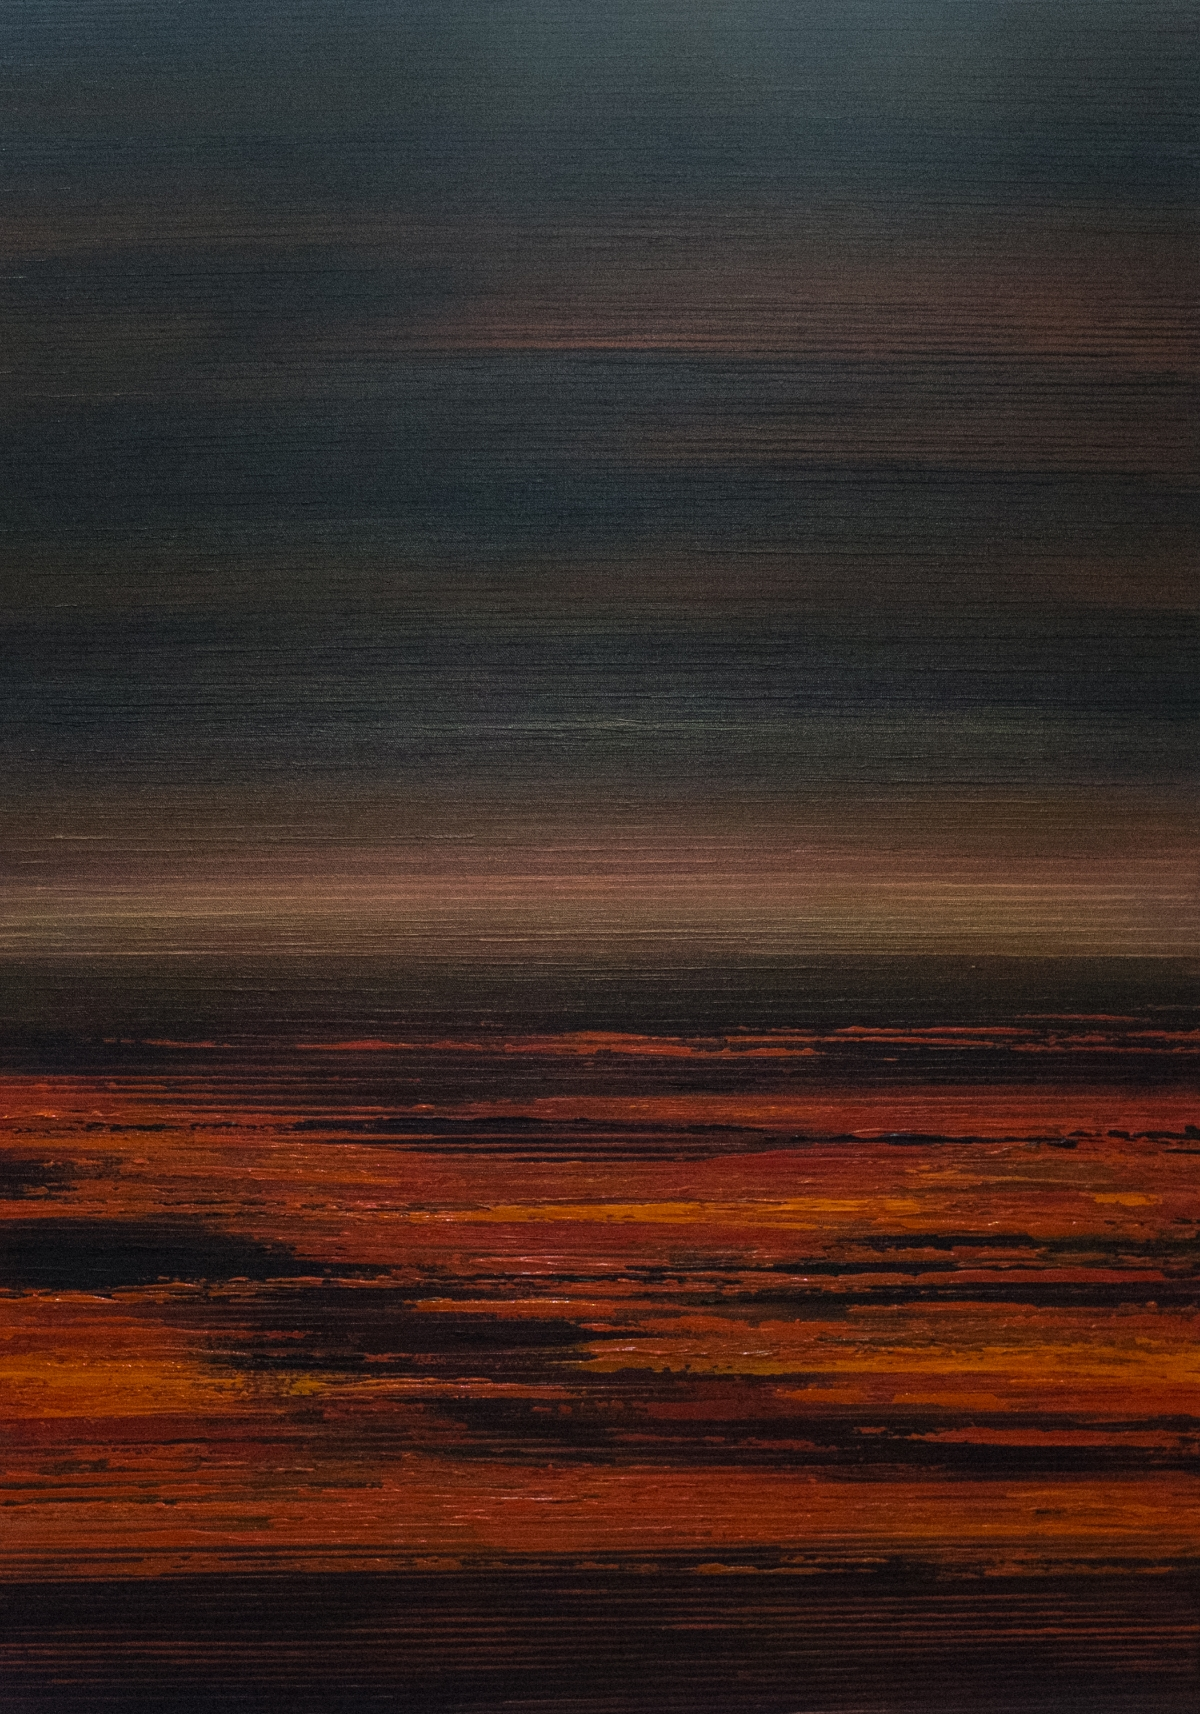 Seascape II - Flaming Red/Brown/Black - 2015